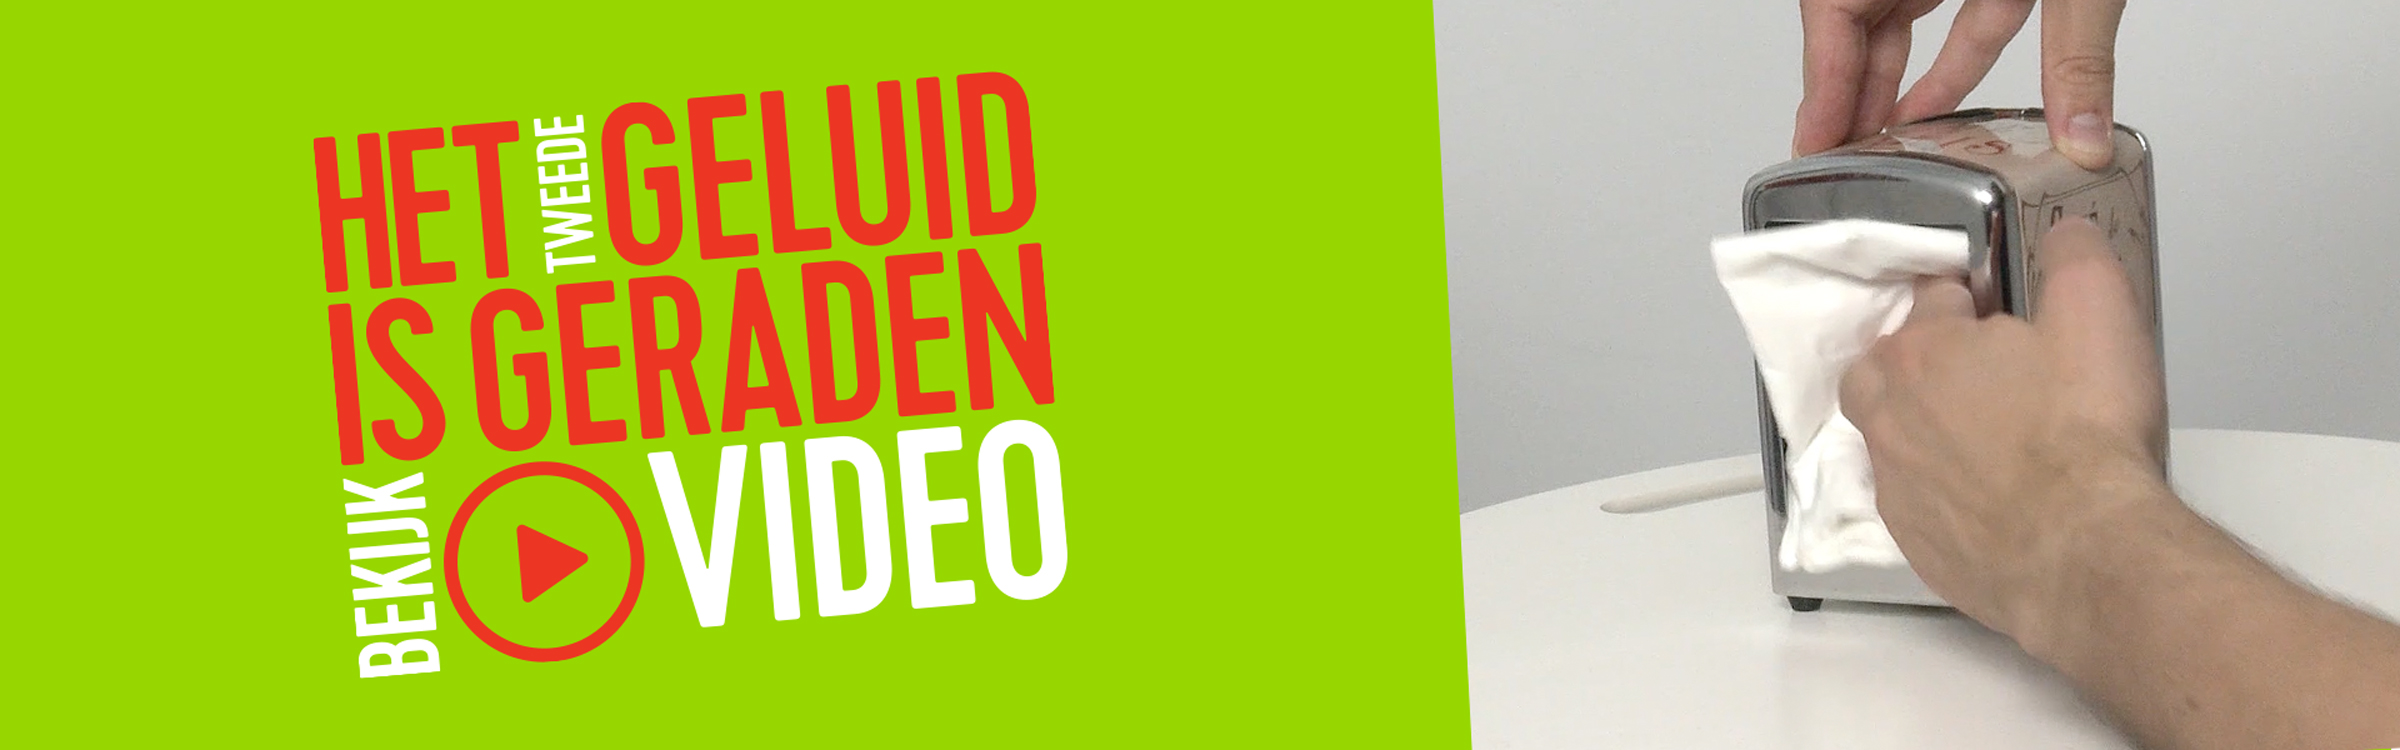 Hetgeluid tweedegeraden video header